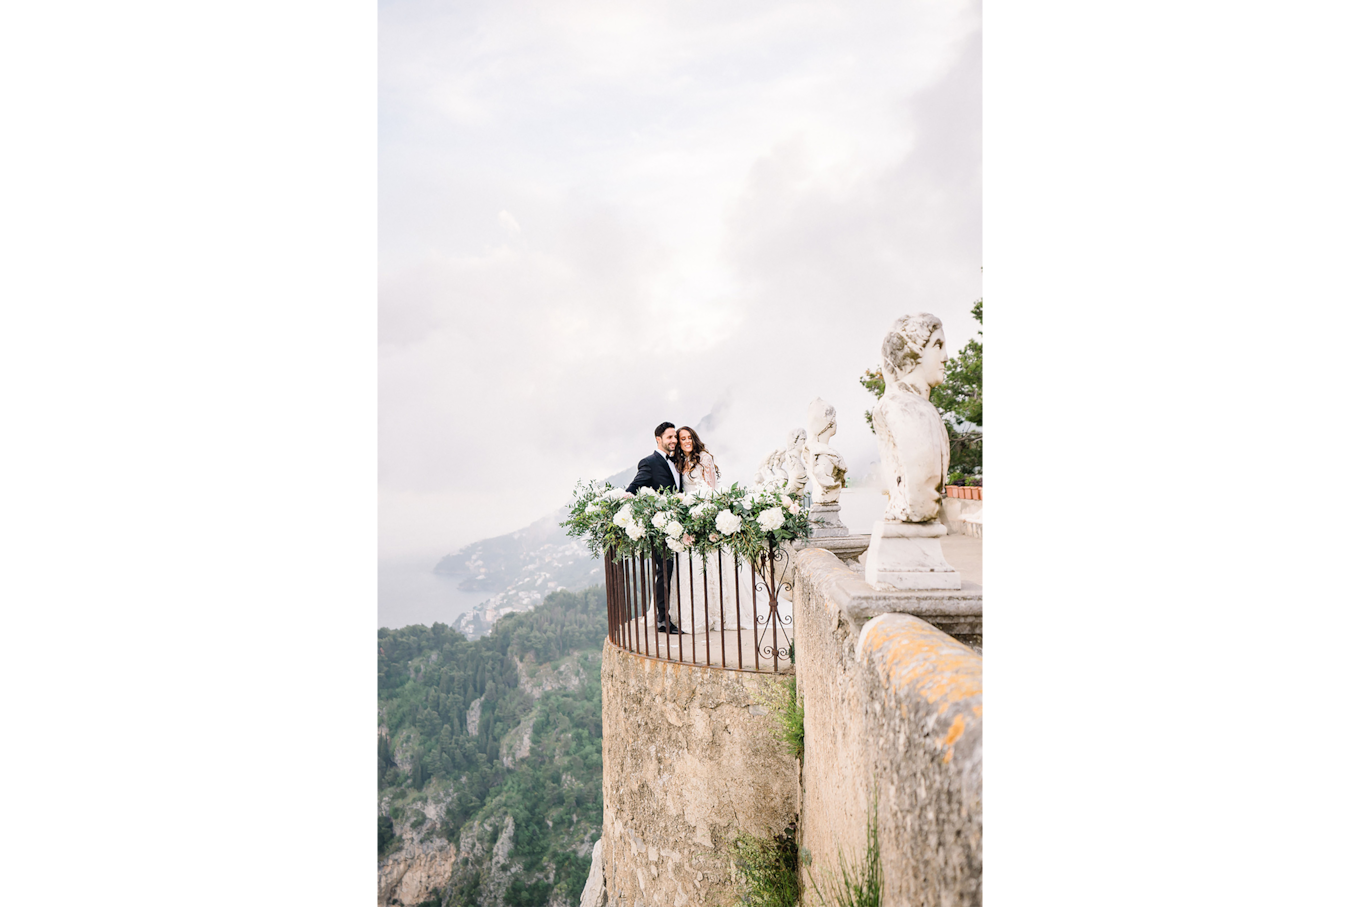 sandra aberg sony alpha 7r3 brides standing on a decorated terrace with a view on surrounding nature